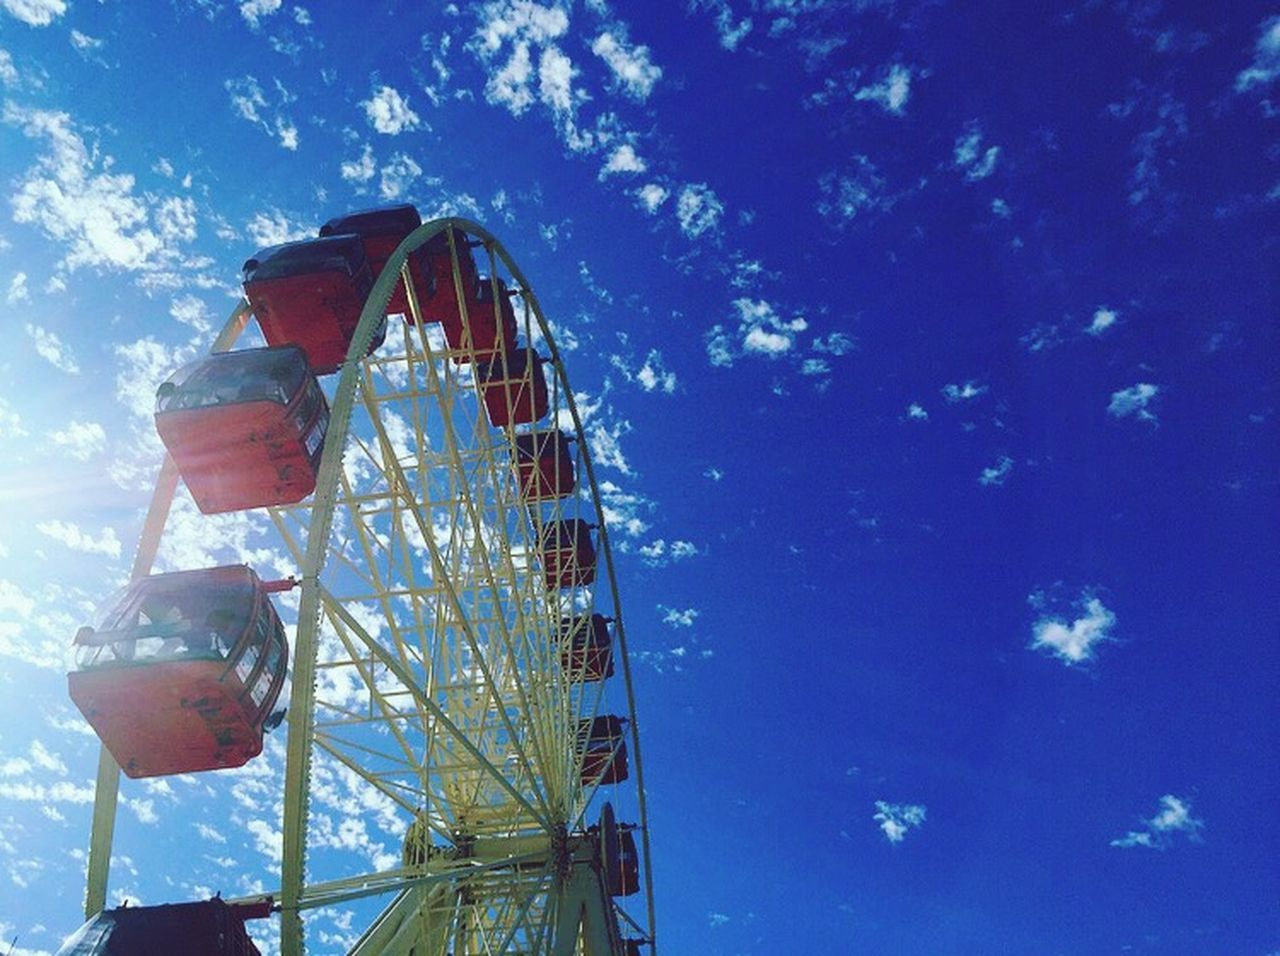 arts culture and entertainment, amusement park, low angle view, ferris wheel, sky, blue, no people, amusement park ride, outdoors, day, tree